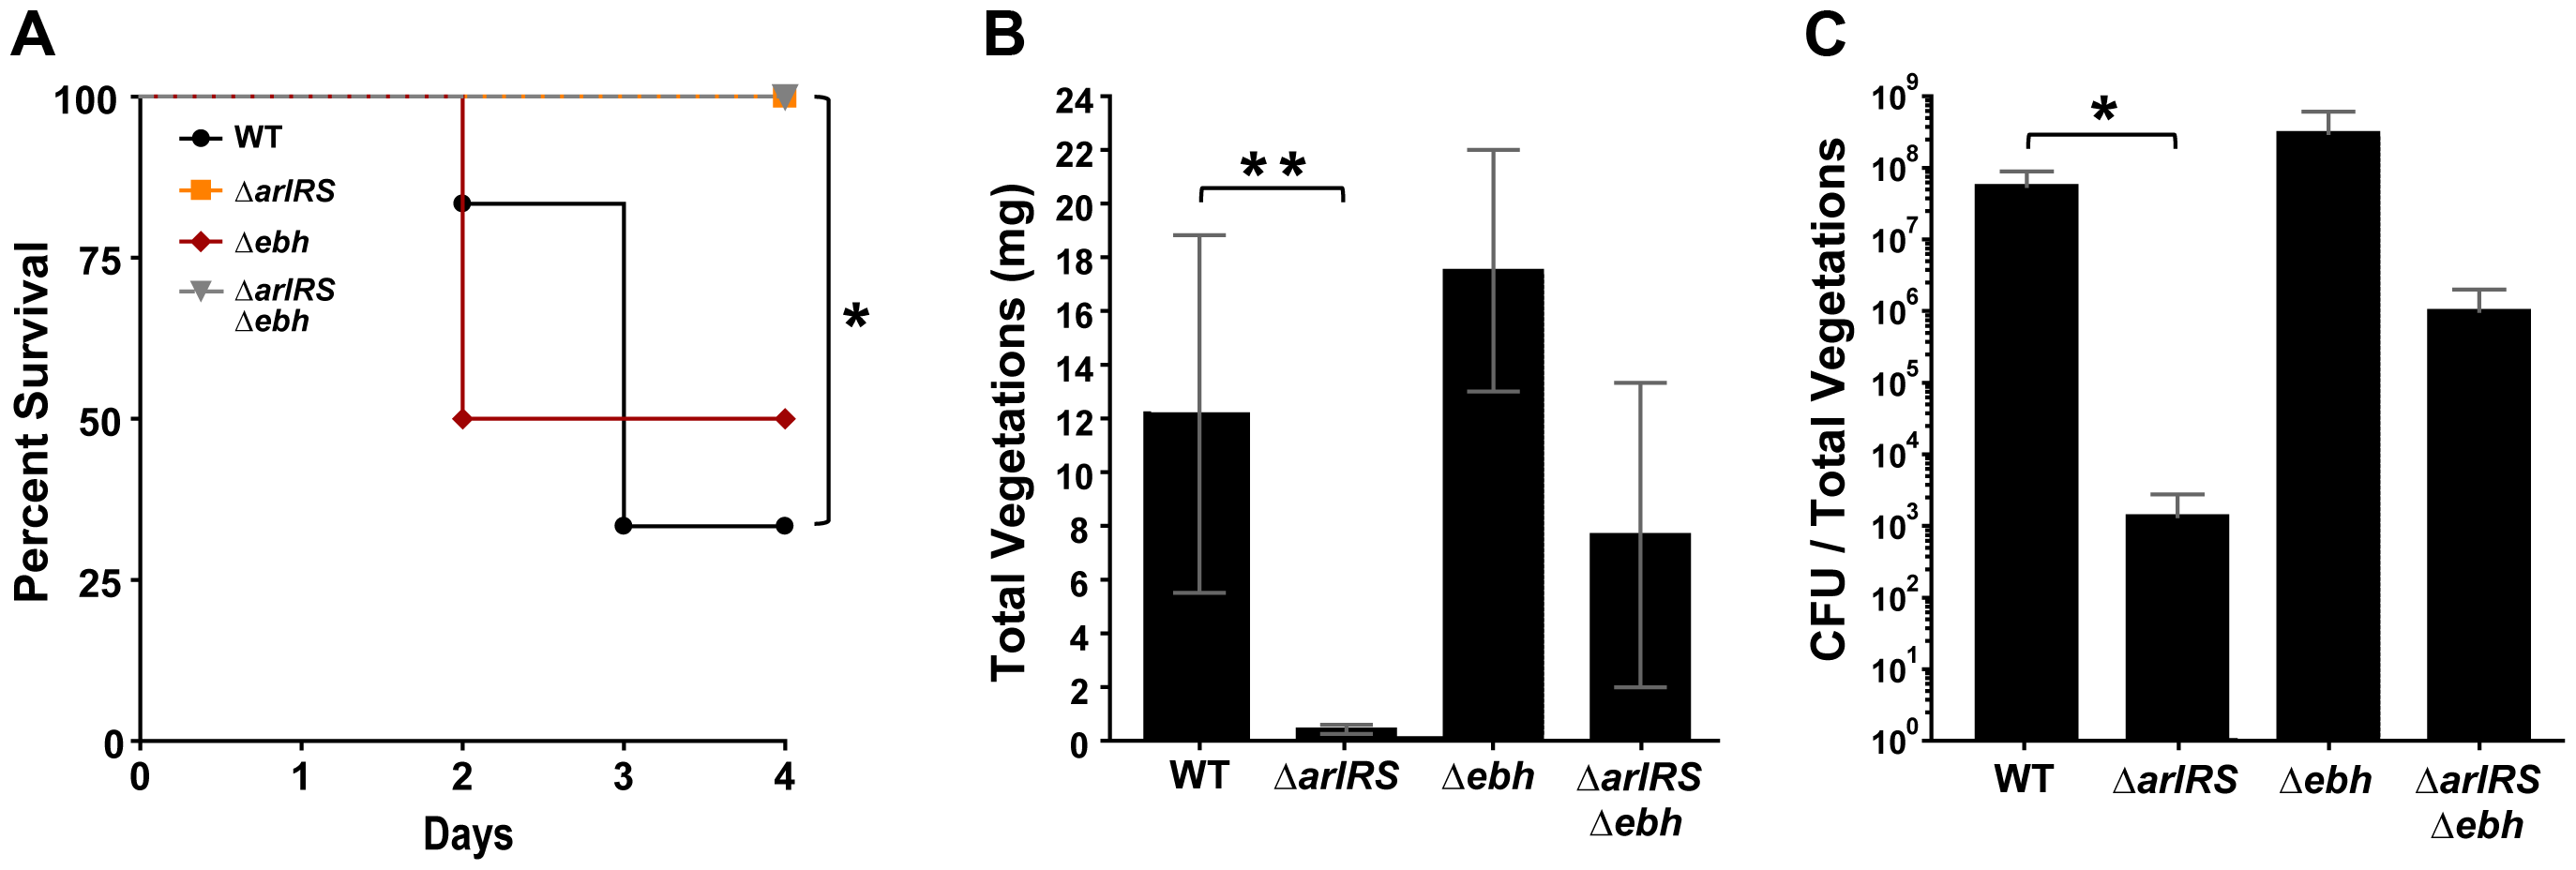 Strains lacking ArlRS are defective in a rabbit model of sepsis and endocarditis.